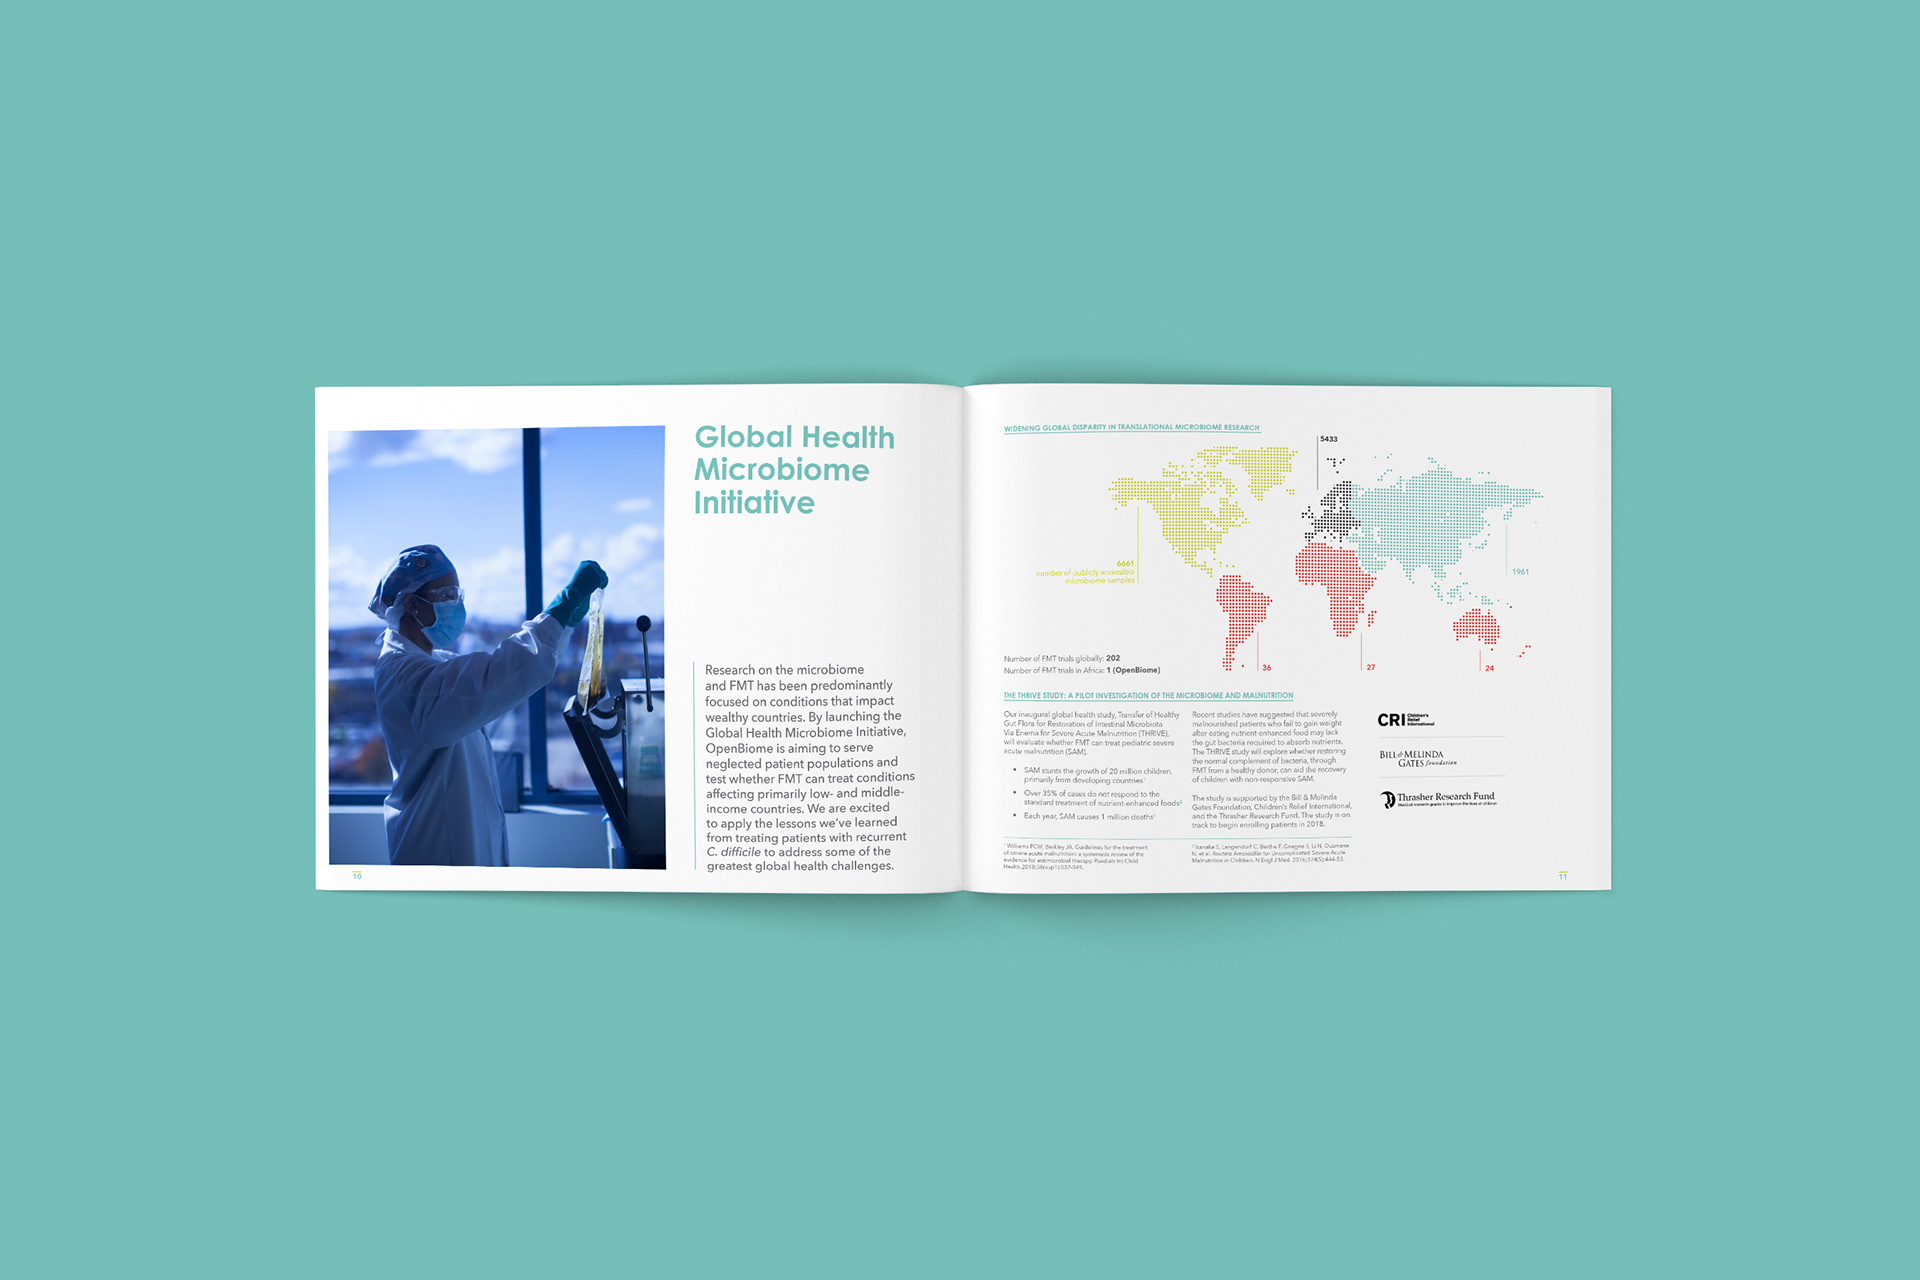 OpenBiome Annual Report on Behance